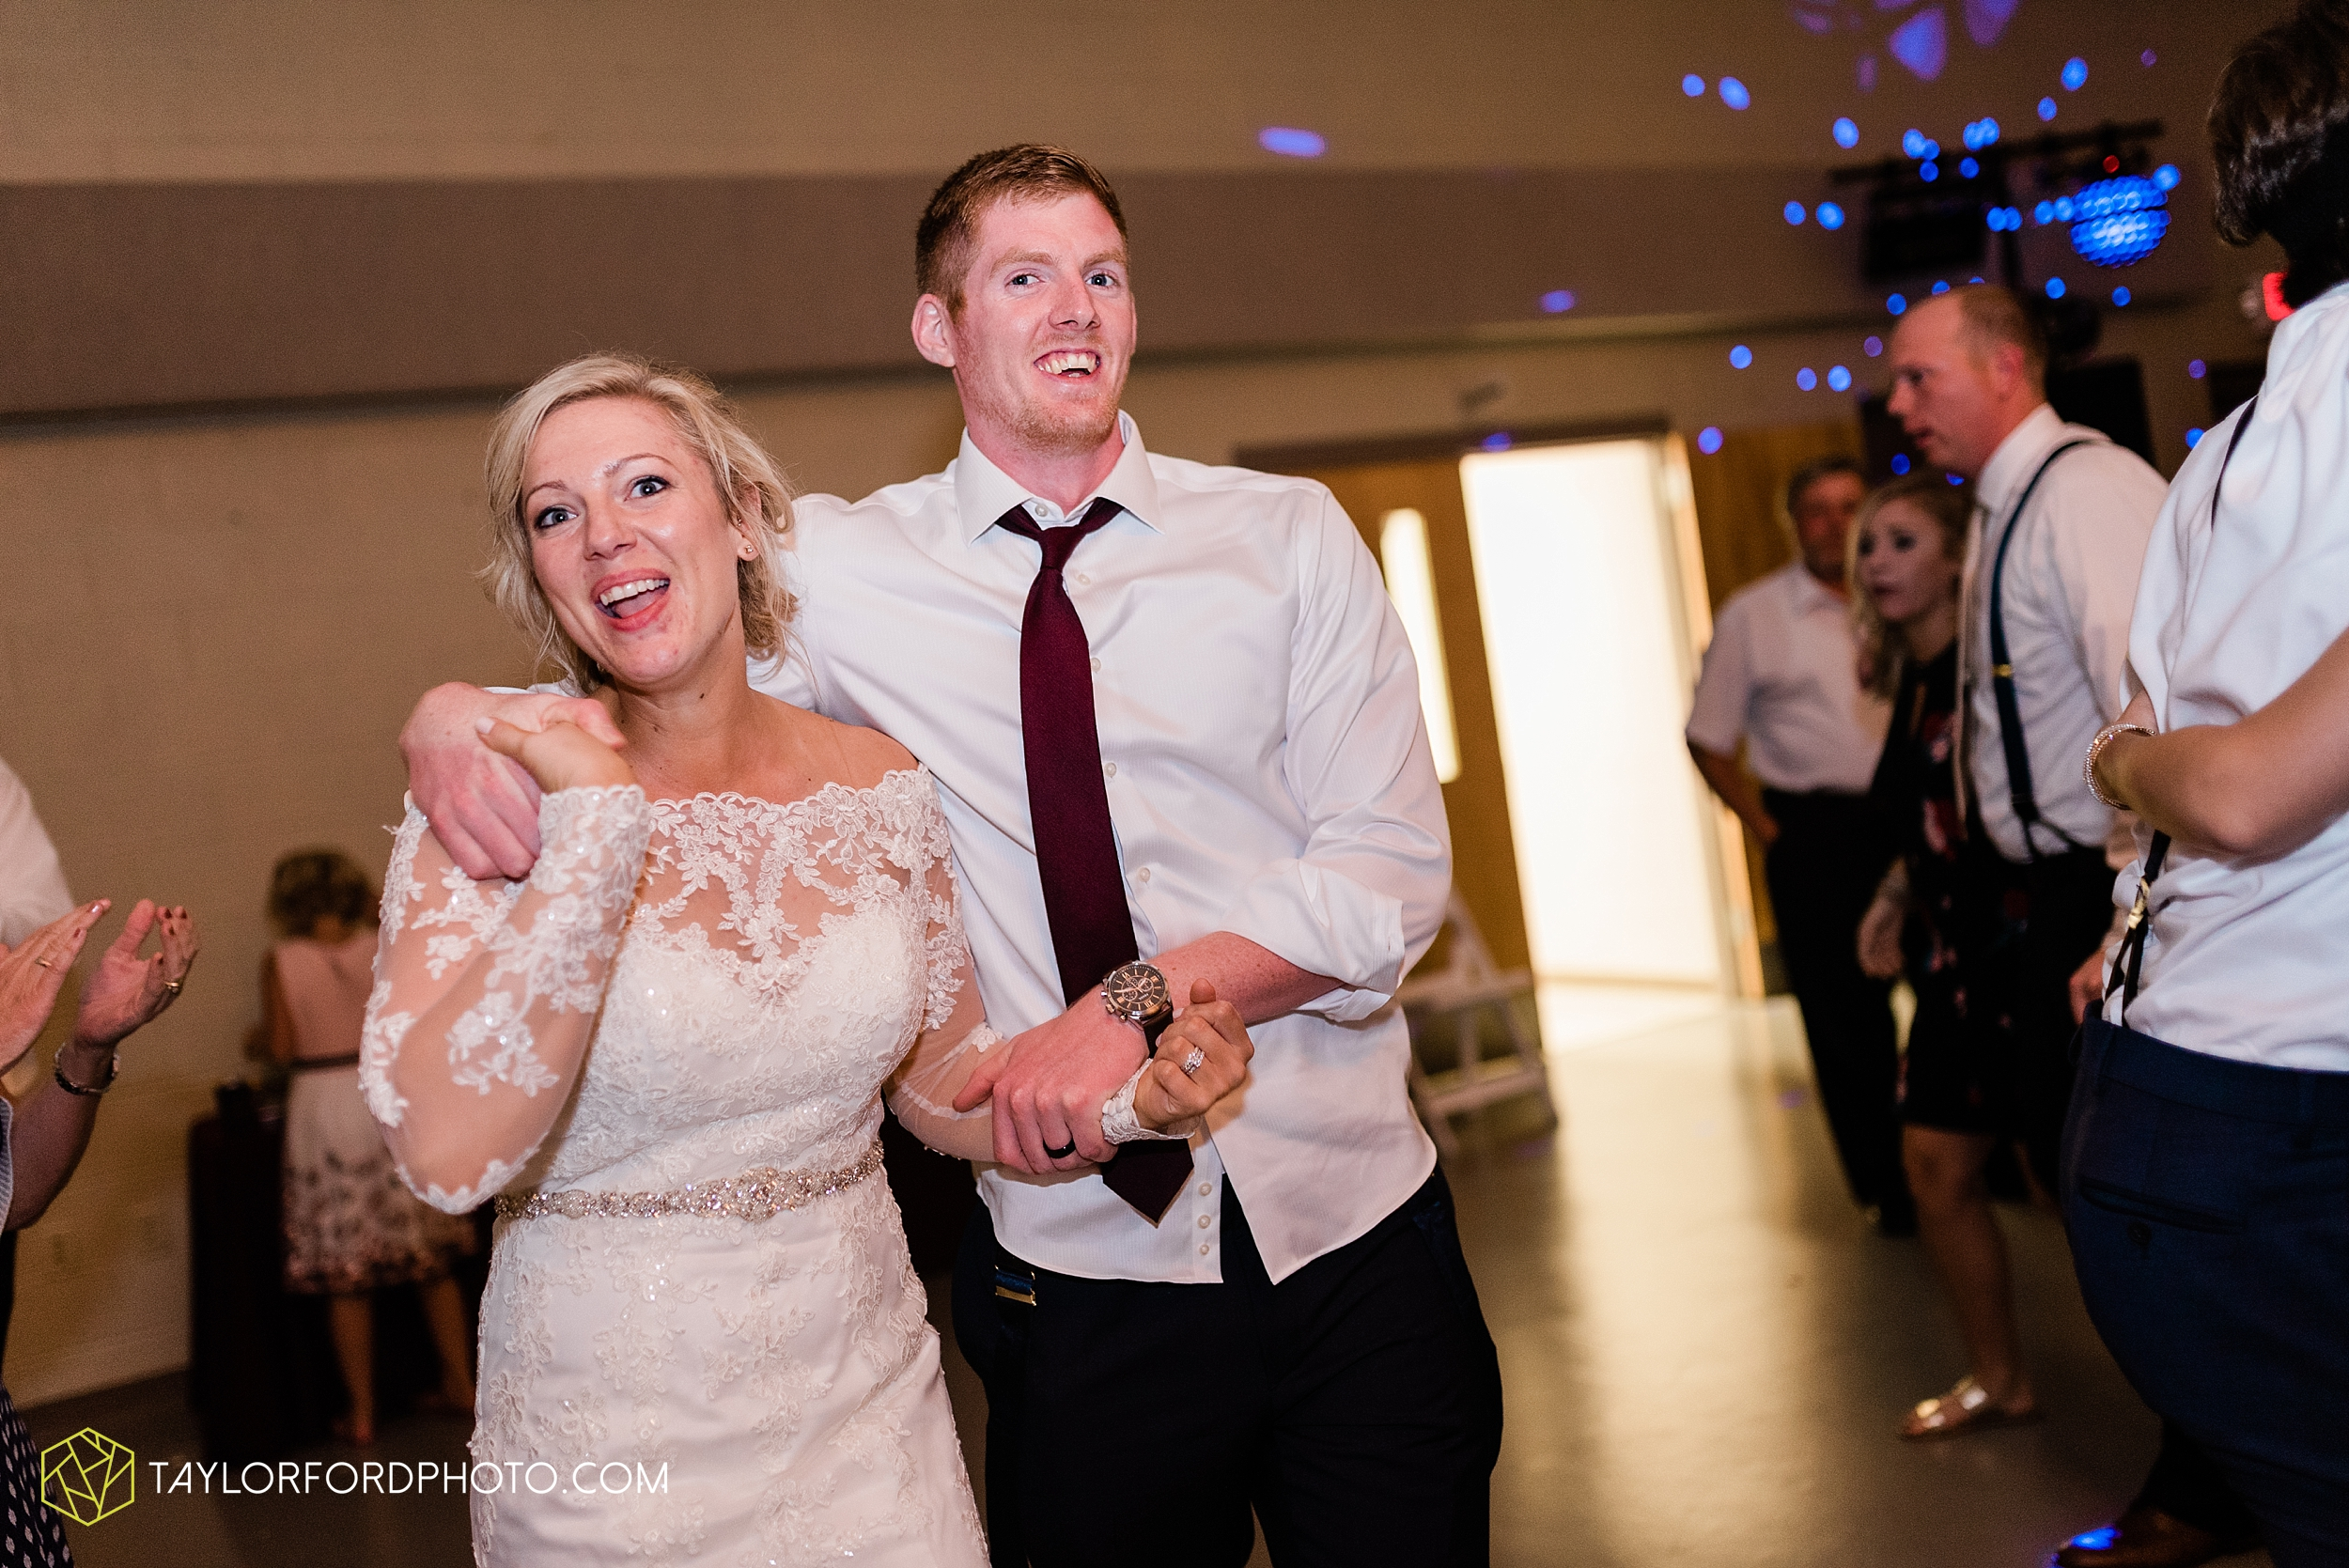 gayle-rayman-mike-steele-ottoville-ohio-wedding-immaculate-conception-parish-center-wedding-sycamore-lake-winery-wannamachers-photographer-taylor-ford-photography_0447.jpg